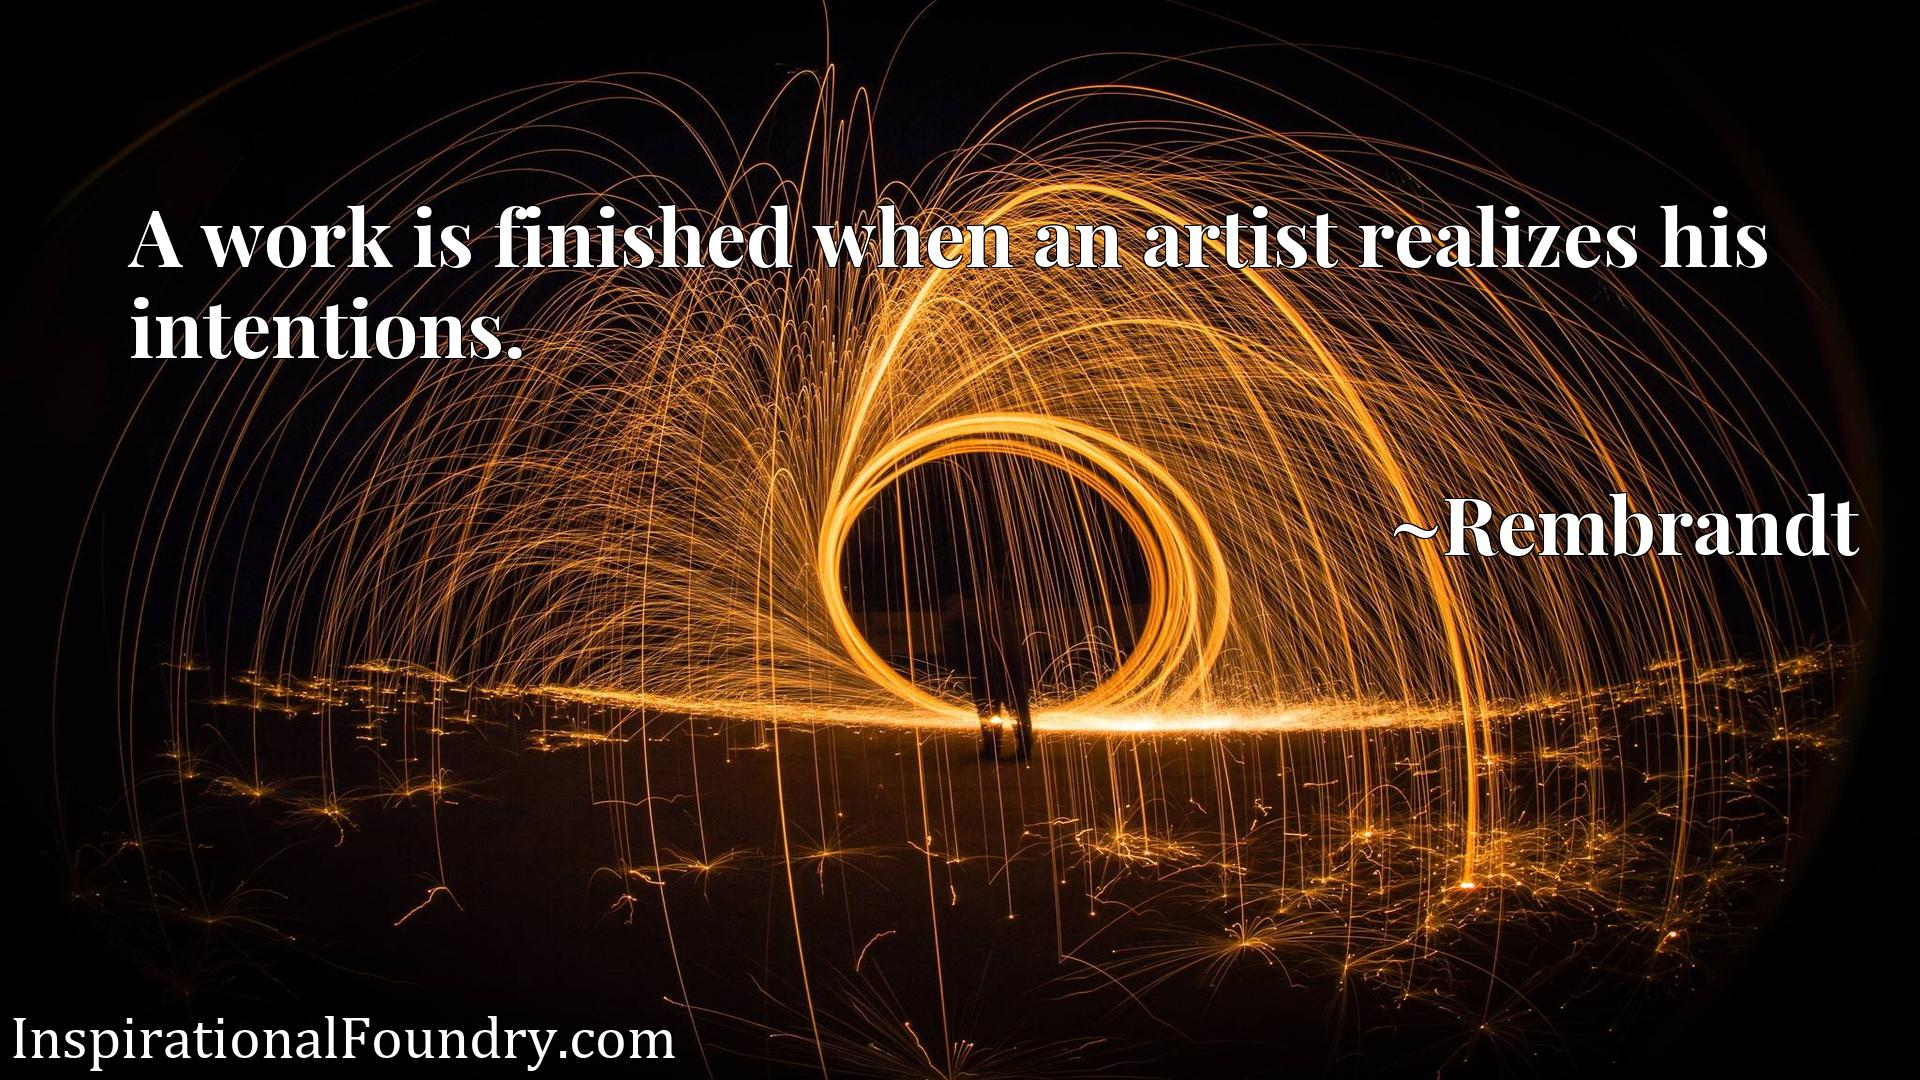 A work is finished when an artist realizes his intentions.